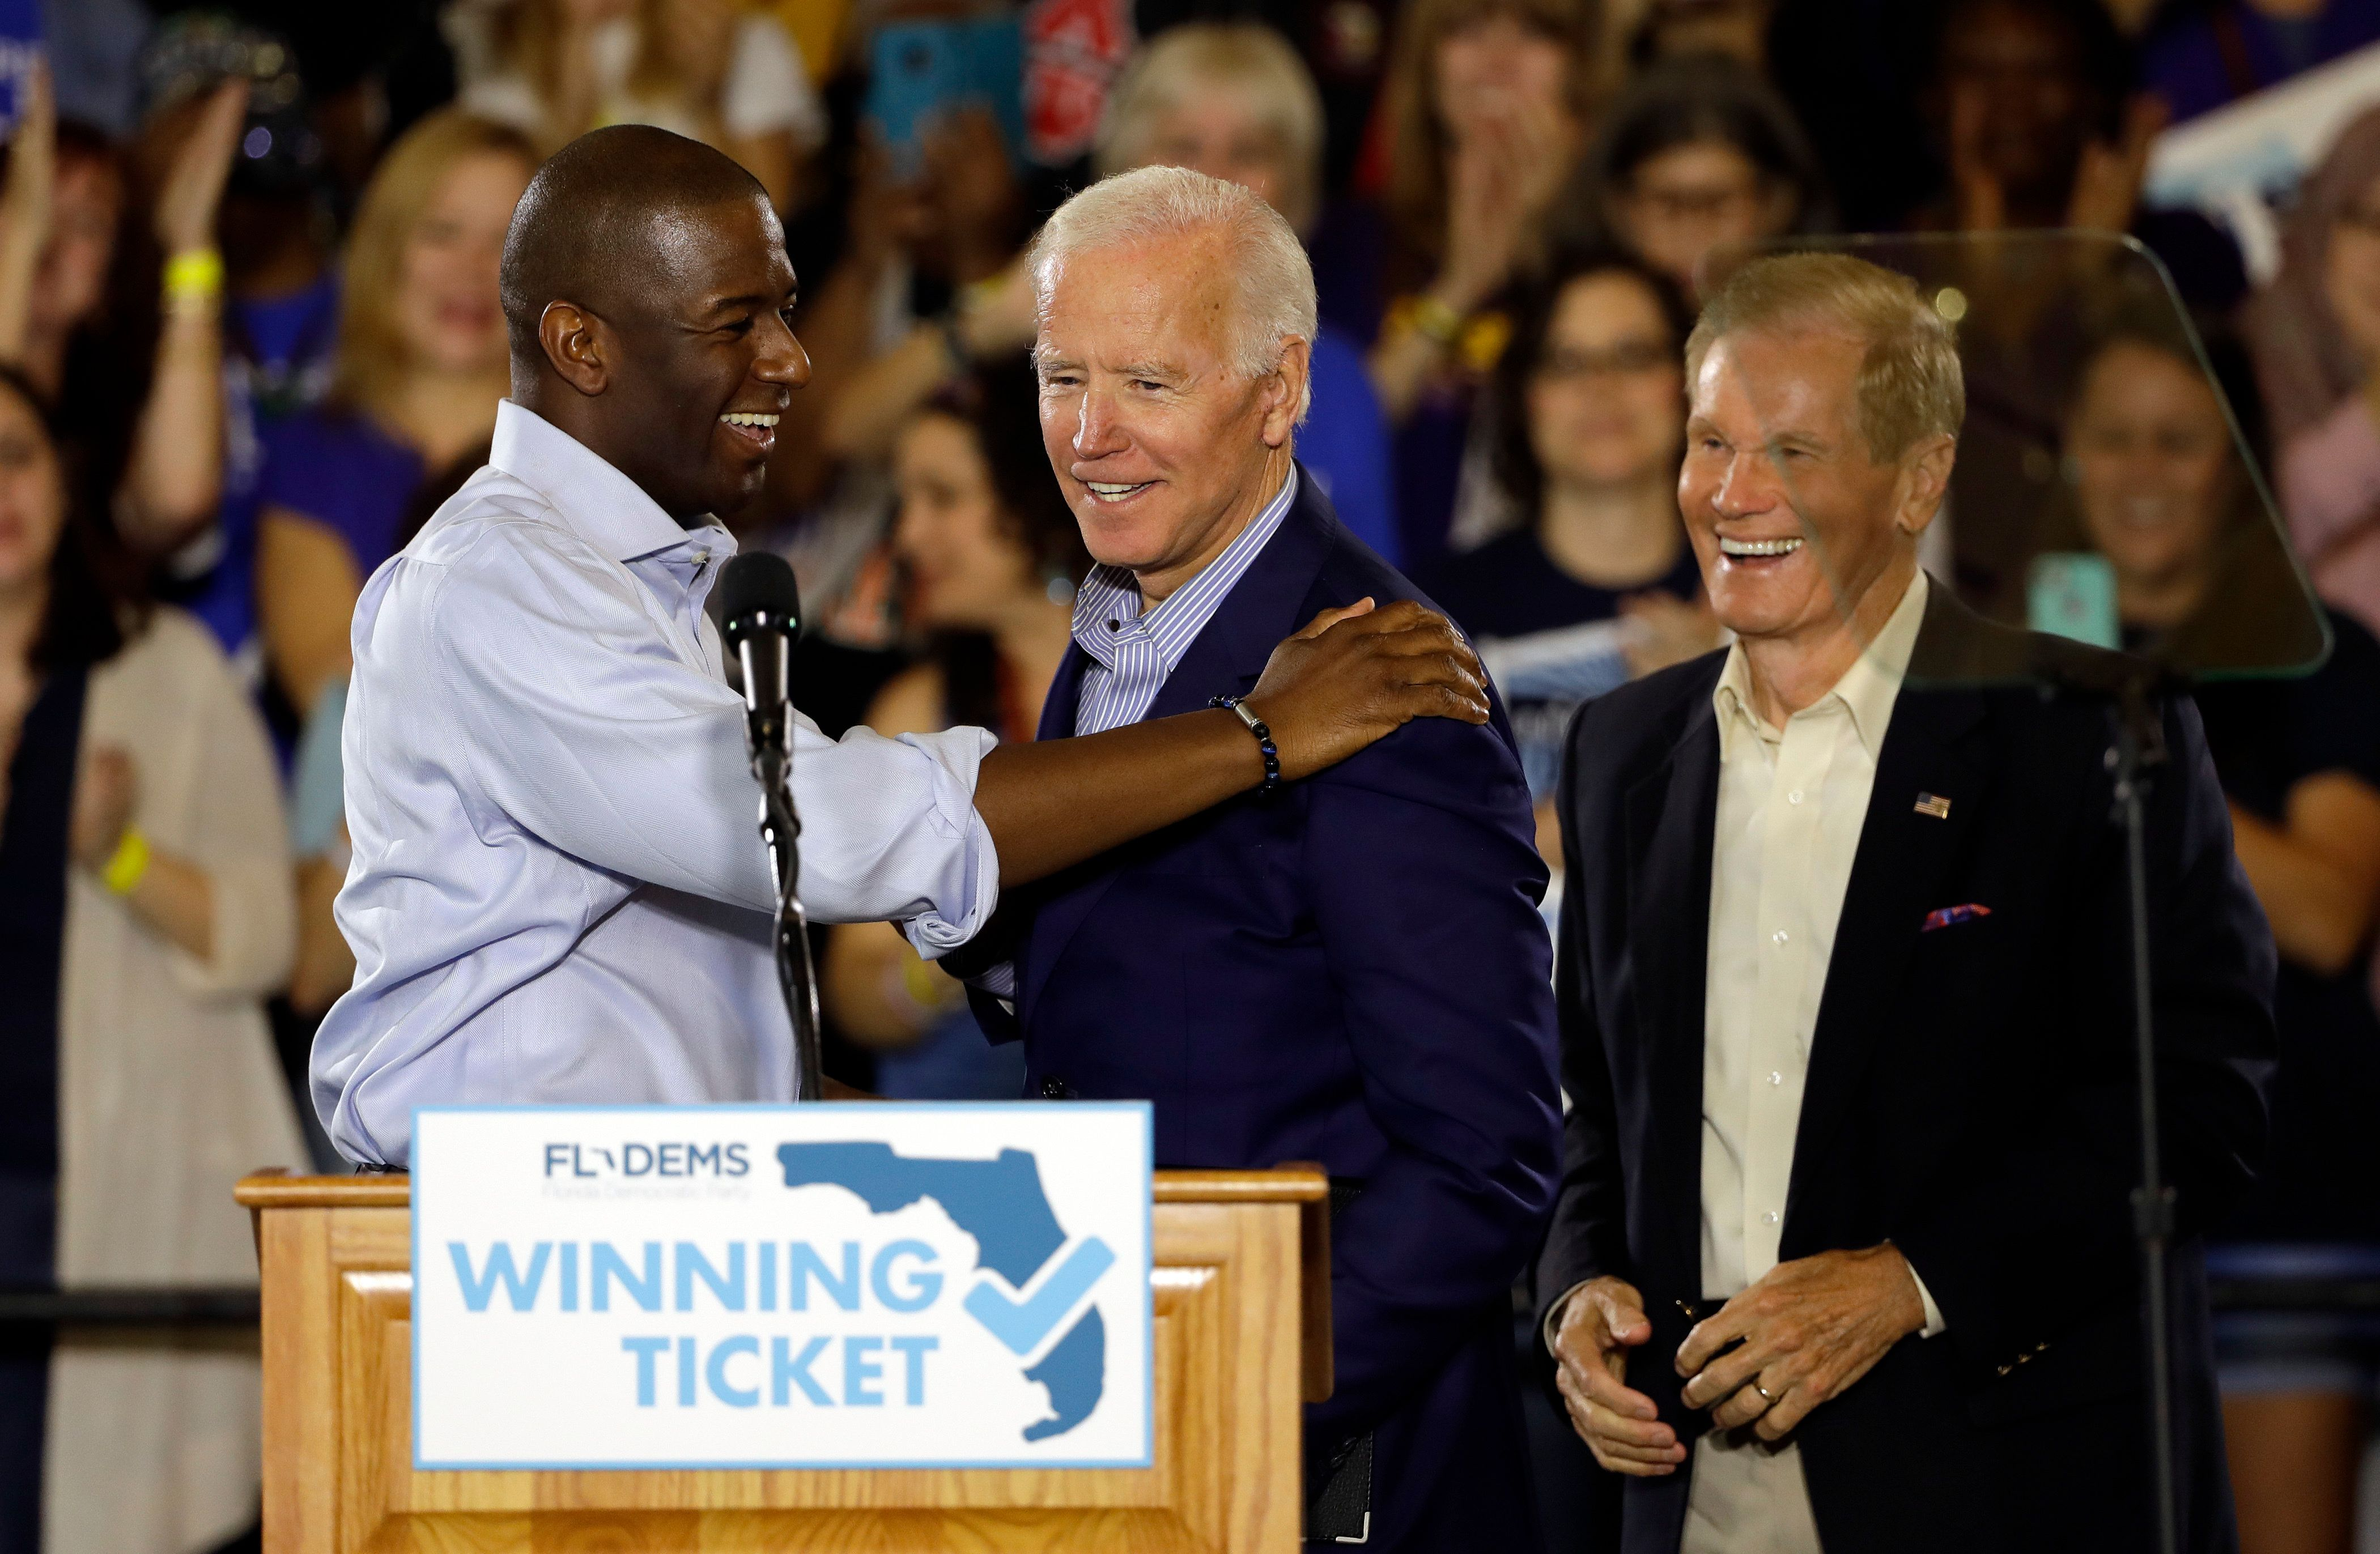 Former Vice President Joe Biden, center, meets Florida Democratic gubernatorial candidate Andrew Gillum, left, and U.S. Sen. Bill Nelson, D-Fla., during a campaign rally for Gillum and Nelson. Monday, Oct. 22, 2018, at the University of South Florida in Tampa, Fla. (AP Photo/Chris O'Meara)